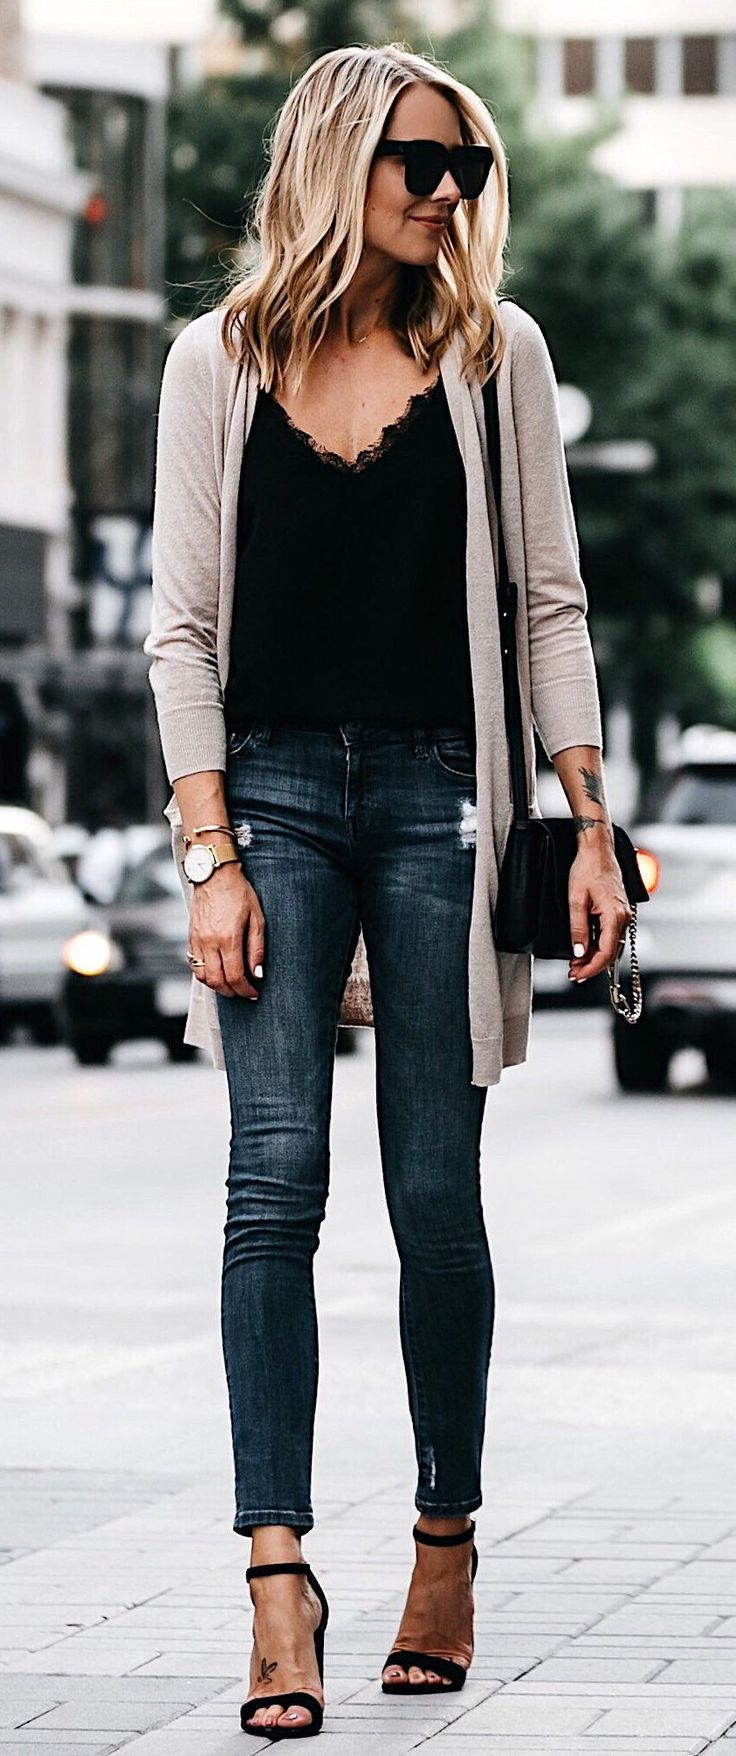 Majestic 21 Casual Fall Outfit Ideas for You to Steal https://www.fashiotopia.com/2017/10/22/21-casual-fall-outfit-ideas-steal/ No matter whether you're a 6 feet tall girl or you fall in the class of petite ladies, this is critical have clothing for all. It's reasonable to say that the vast majority of women love fashion and wearing beautiful clothing